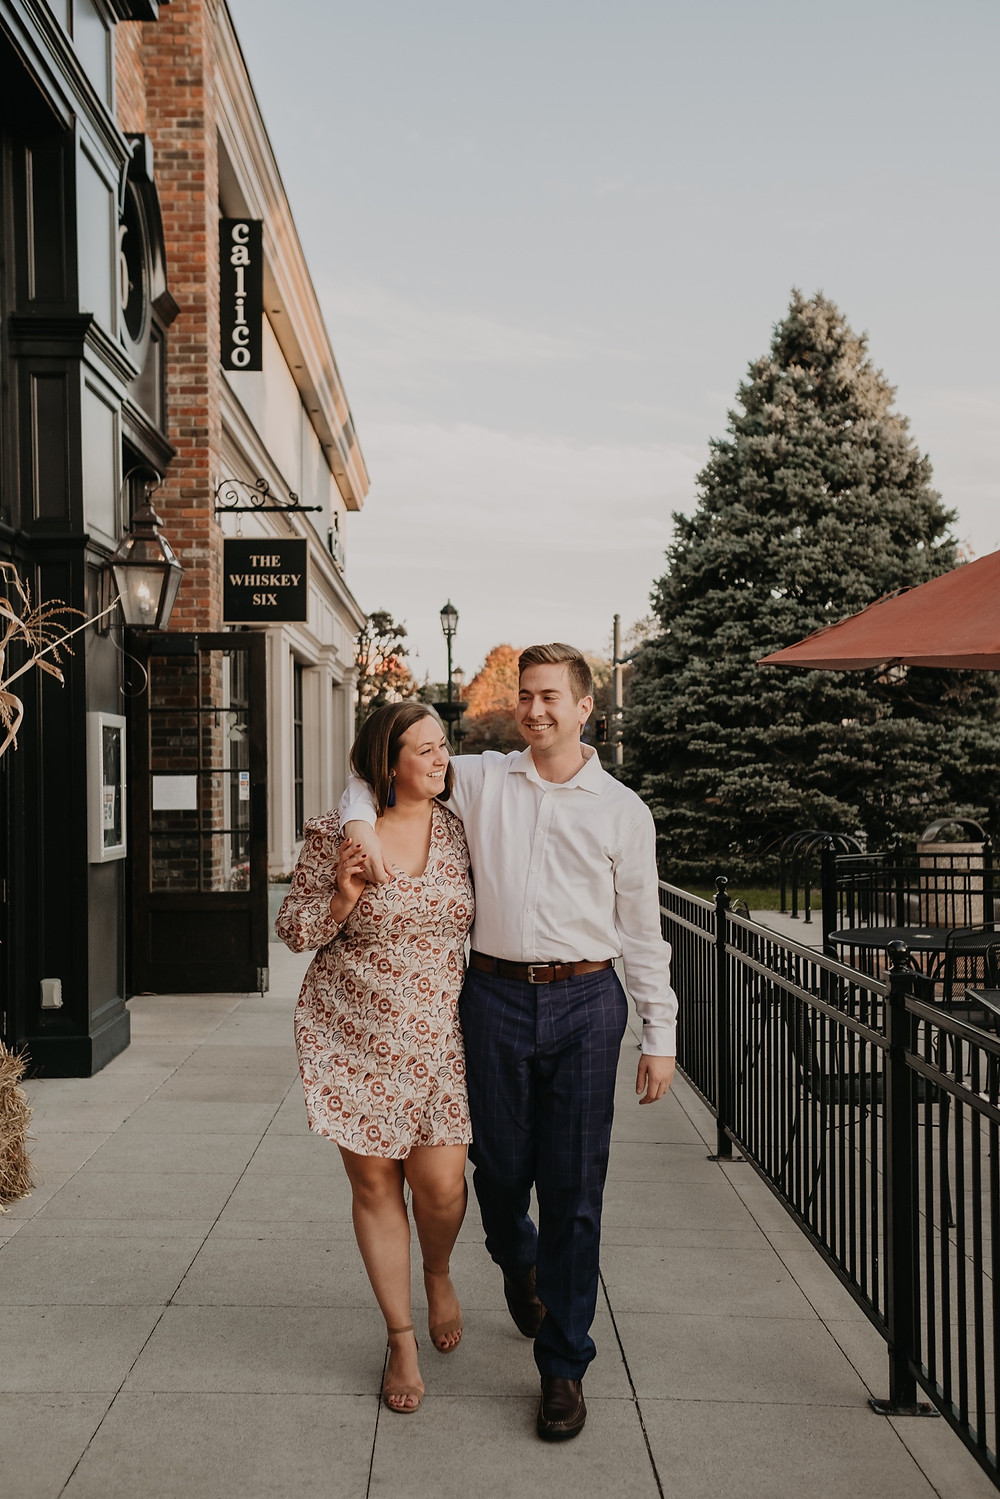 Grosse Pointe engagement photos in summertime. Photographed by Nicole Leanne Photography.